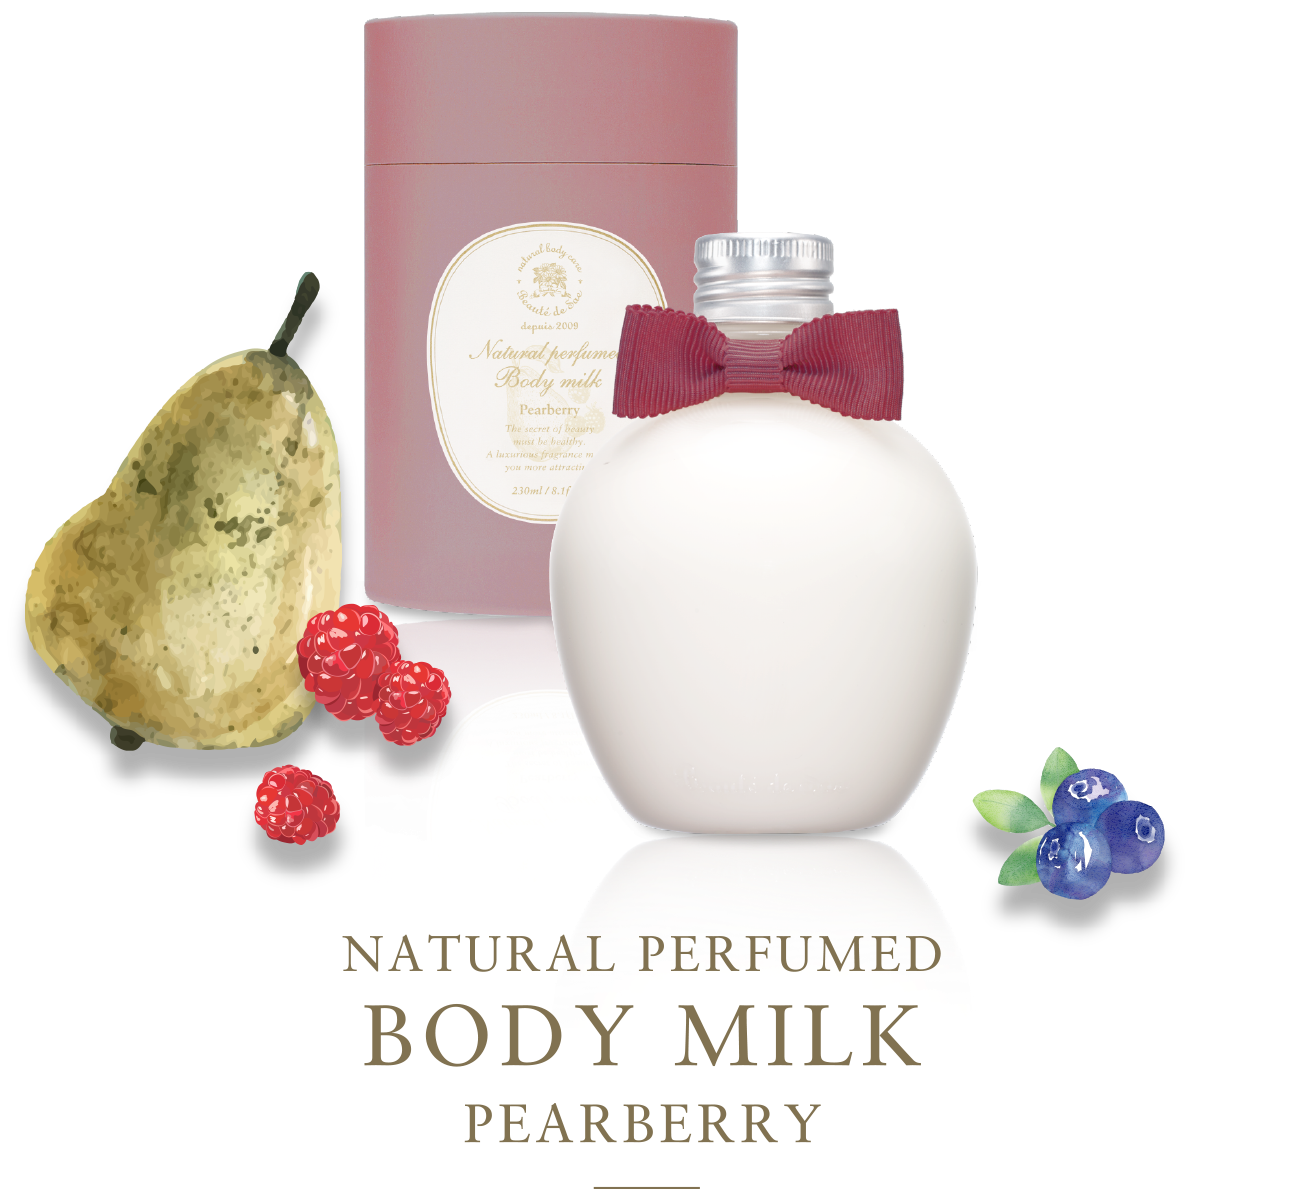 BODY MILK PEARBERRY